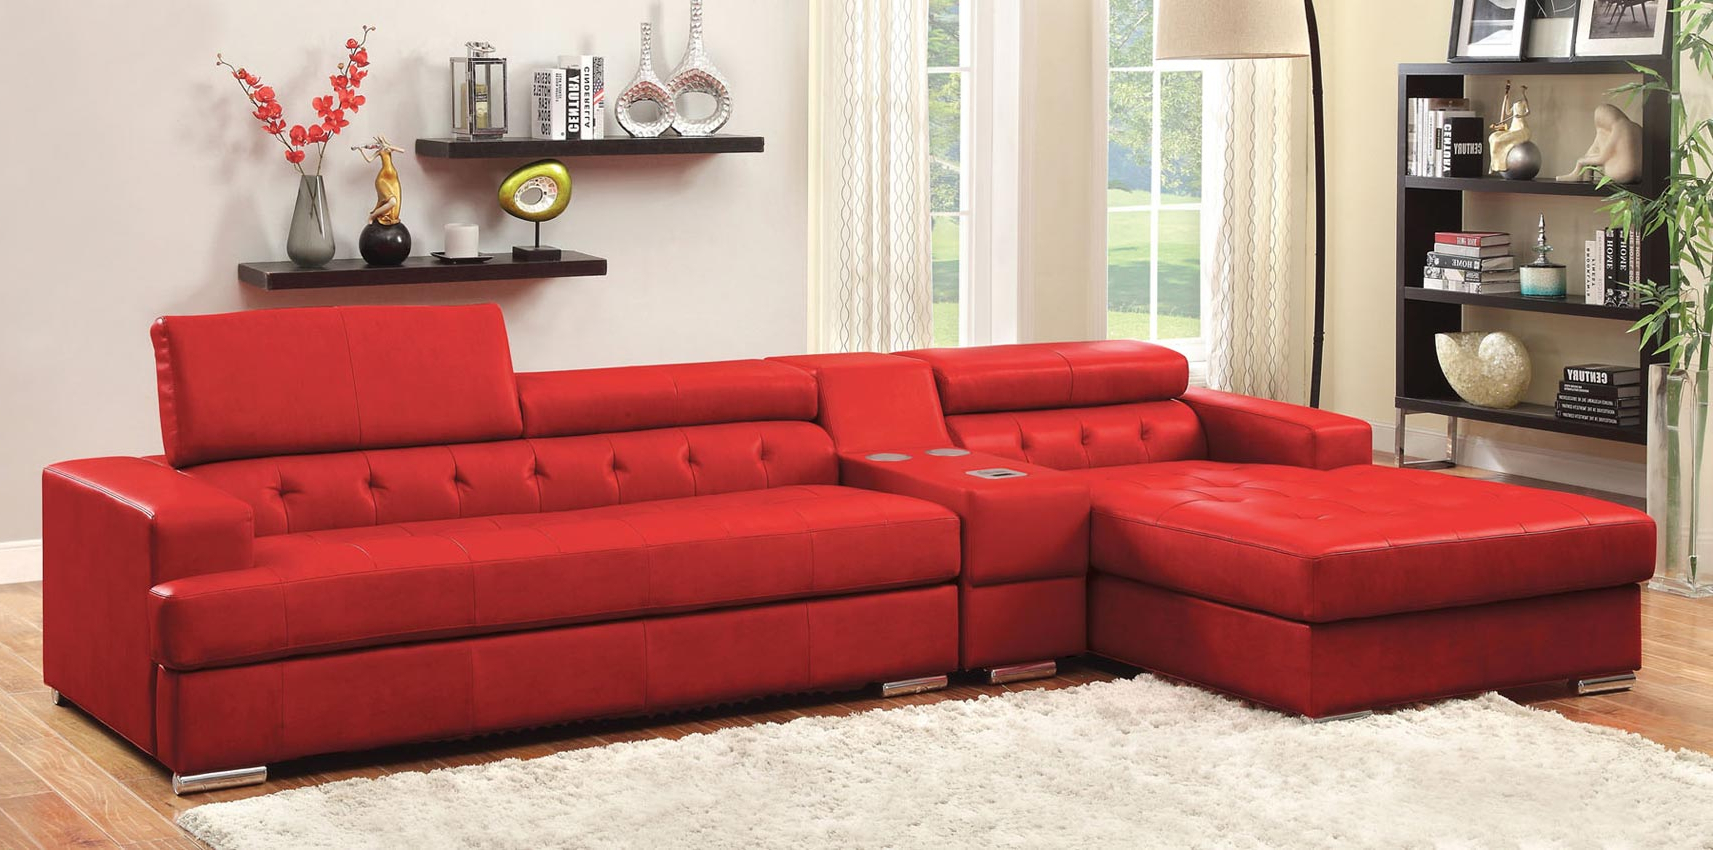 Best And Newest 3 Pcs Red Leather Sofa Set With Console Throughout Red Sofas (View 4 of 15)